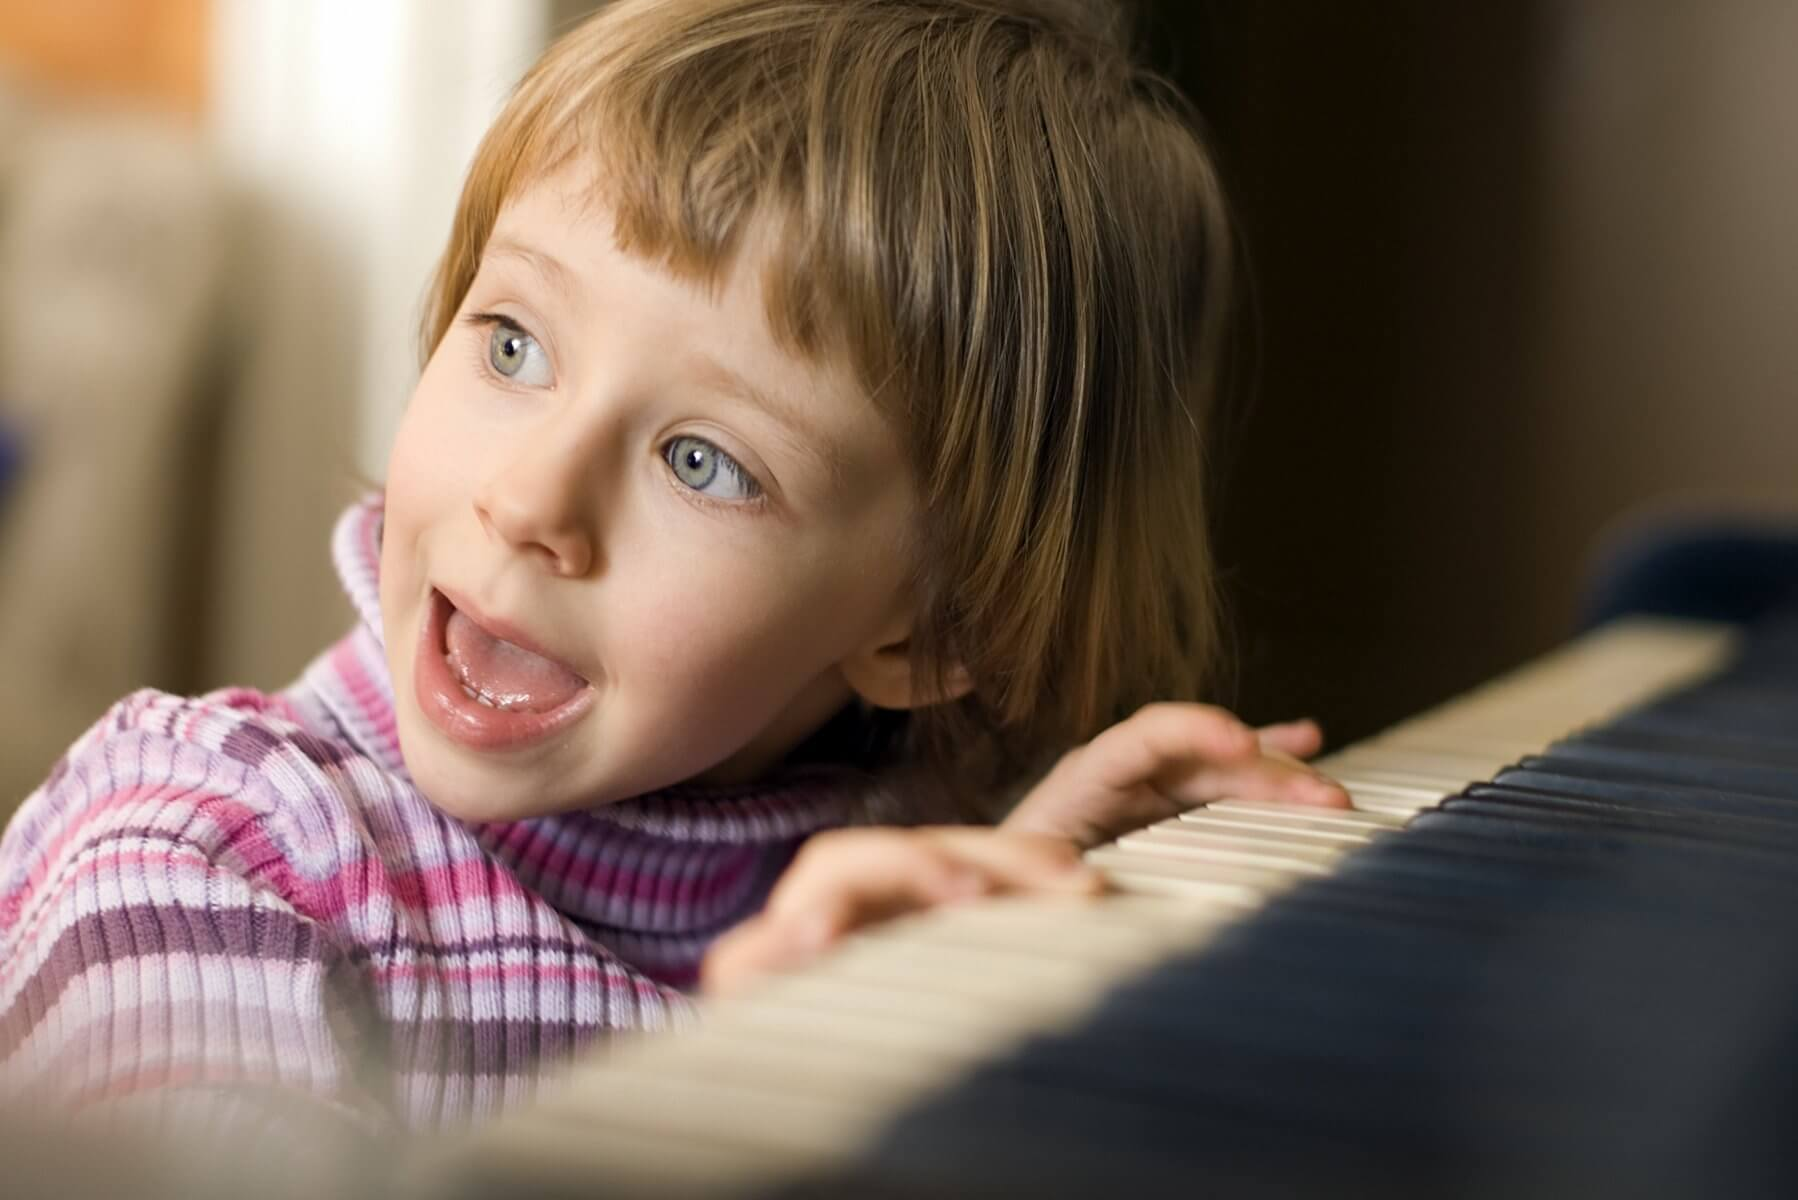 Our Favourite Childhood Games - Piano lessons should be high on your list